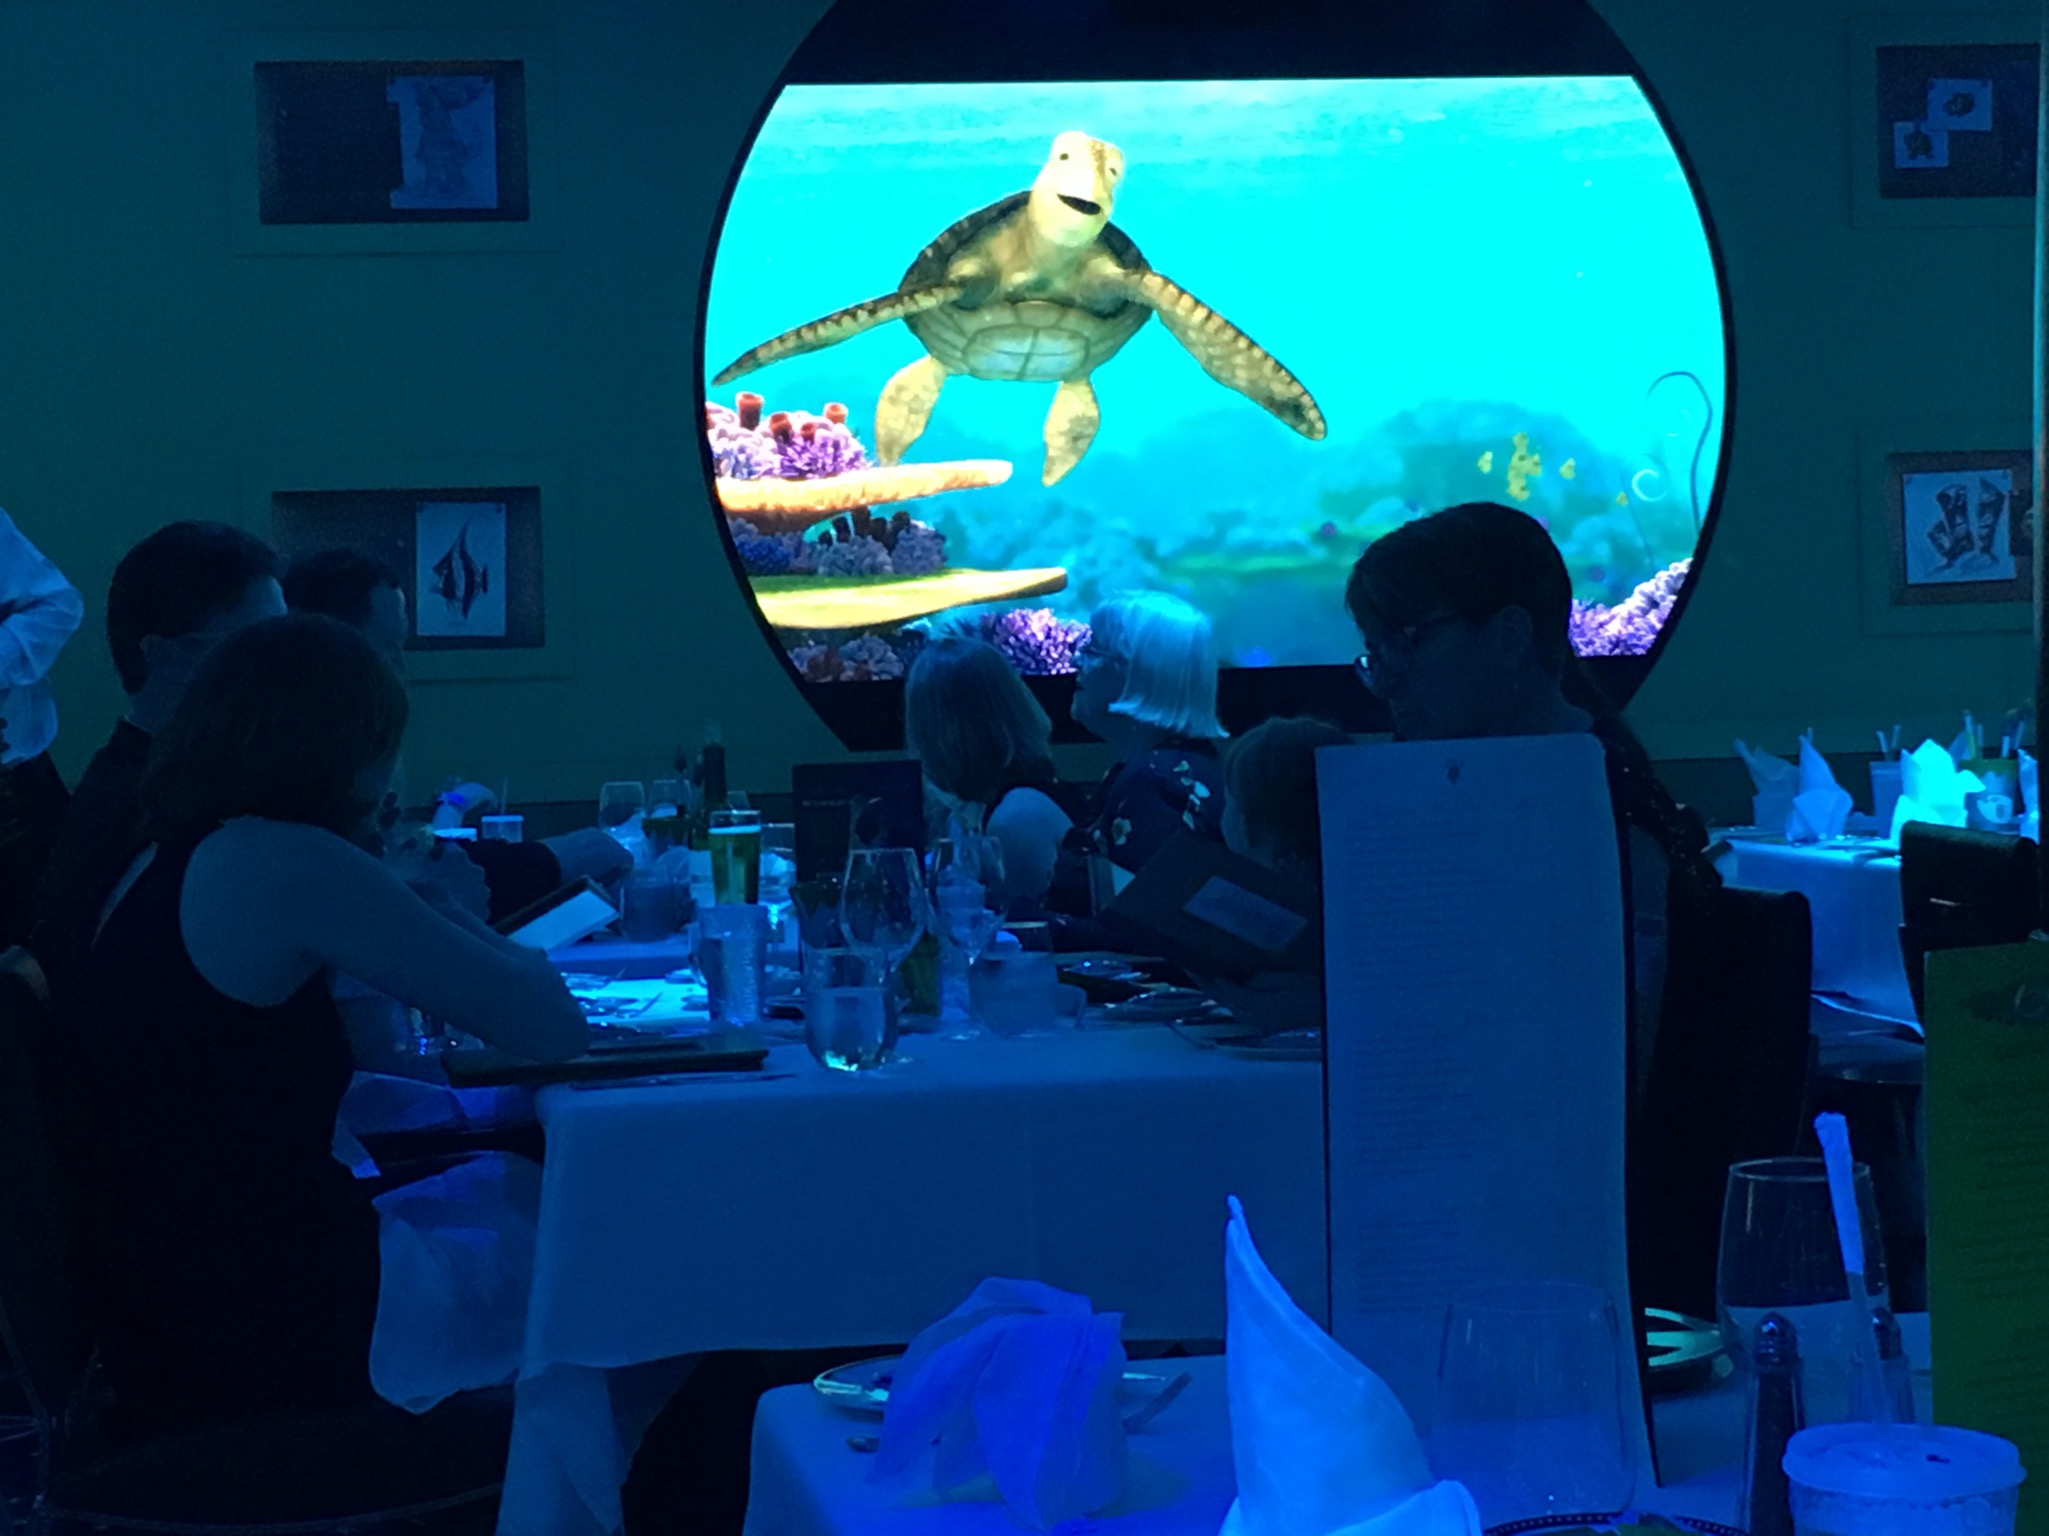 Crush made his appearance a few times throughout the meal and interacted with guests.